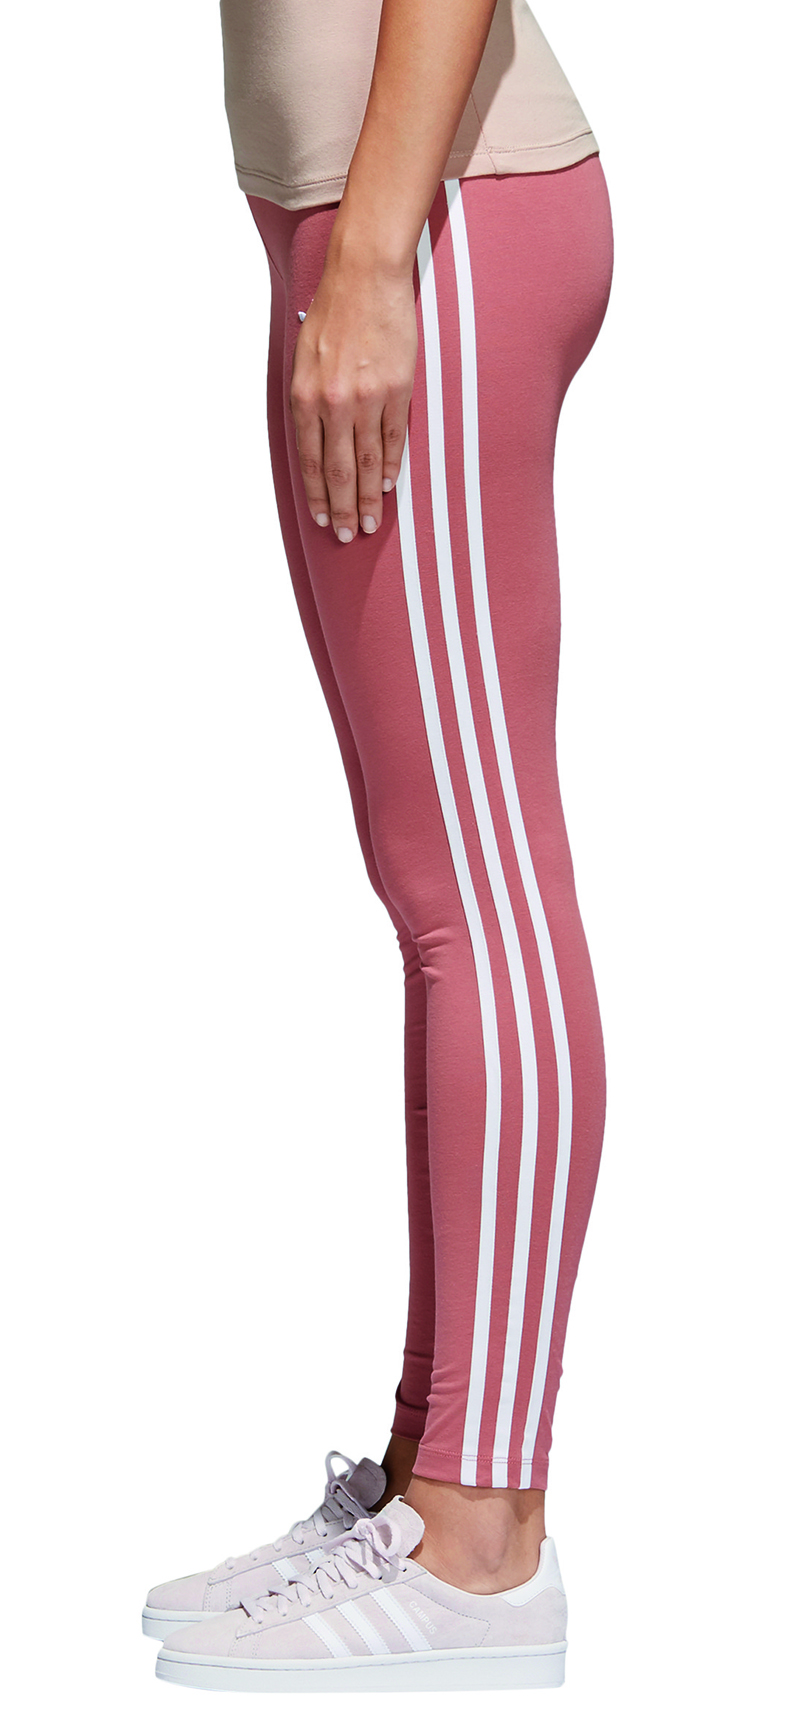 Details zu adidas Leggings Damen Women Stretch Hose Turnhose Sporthose Leggins